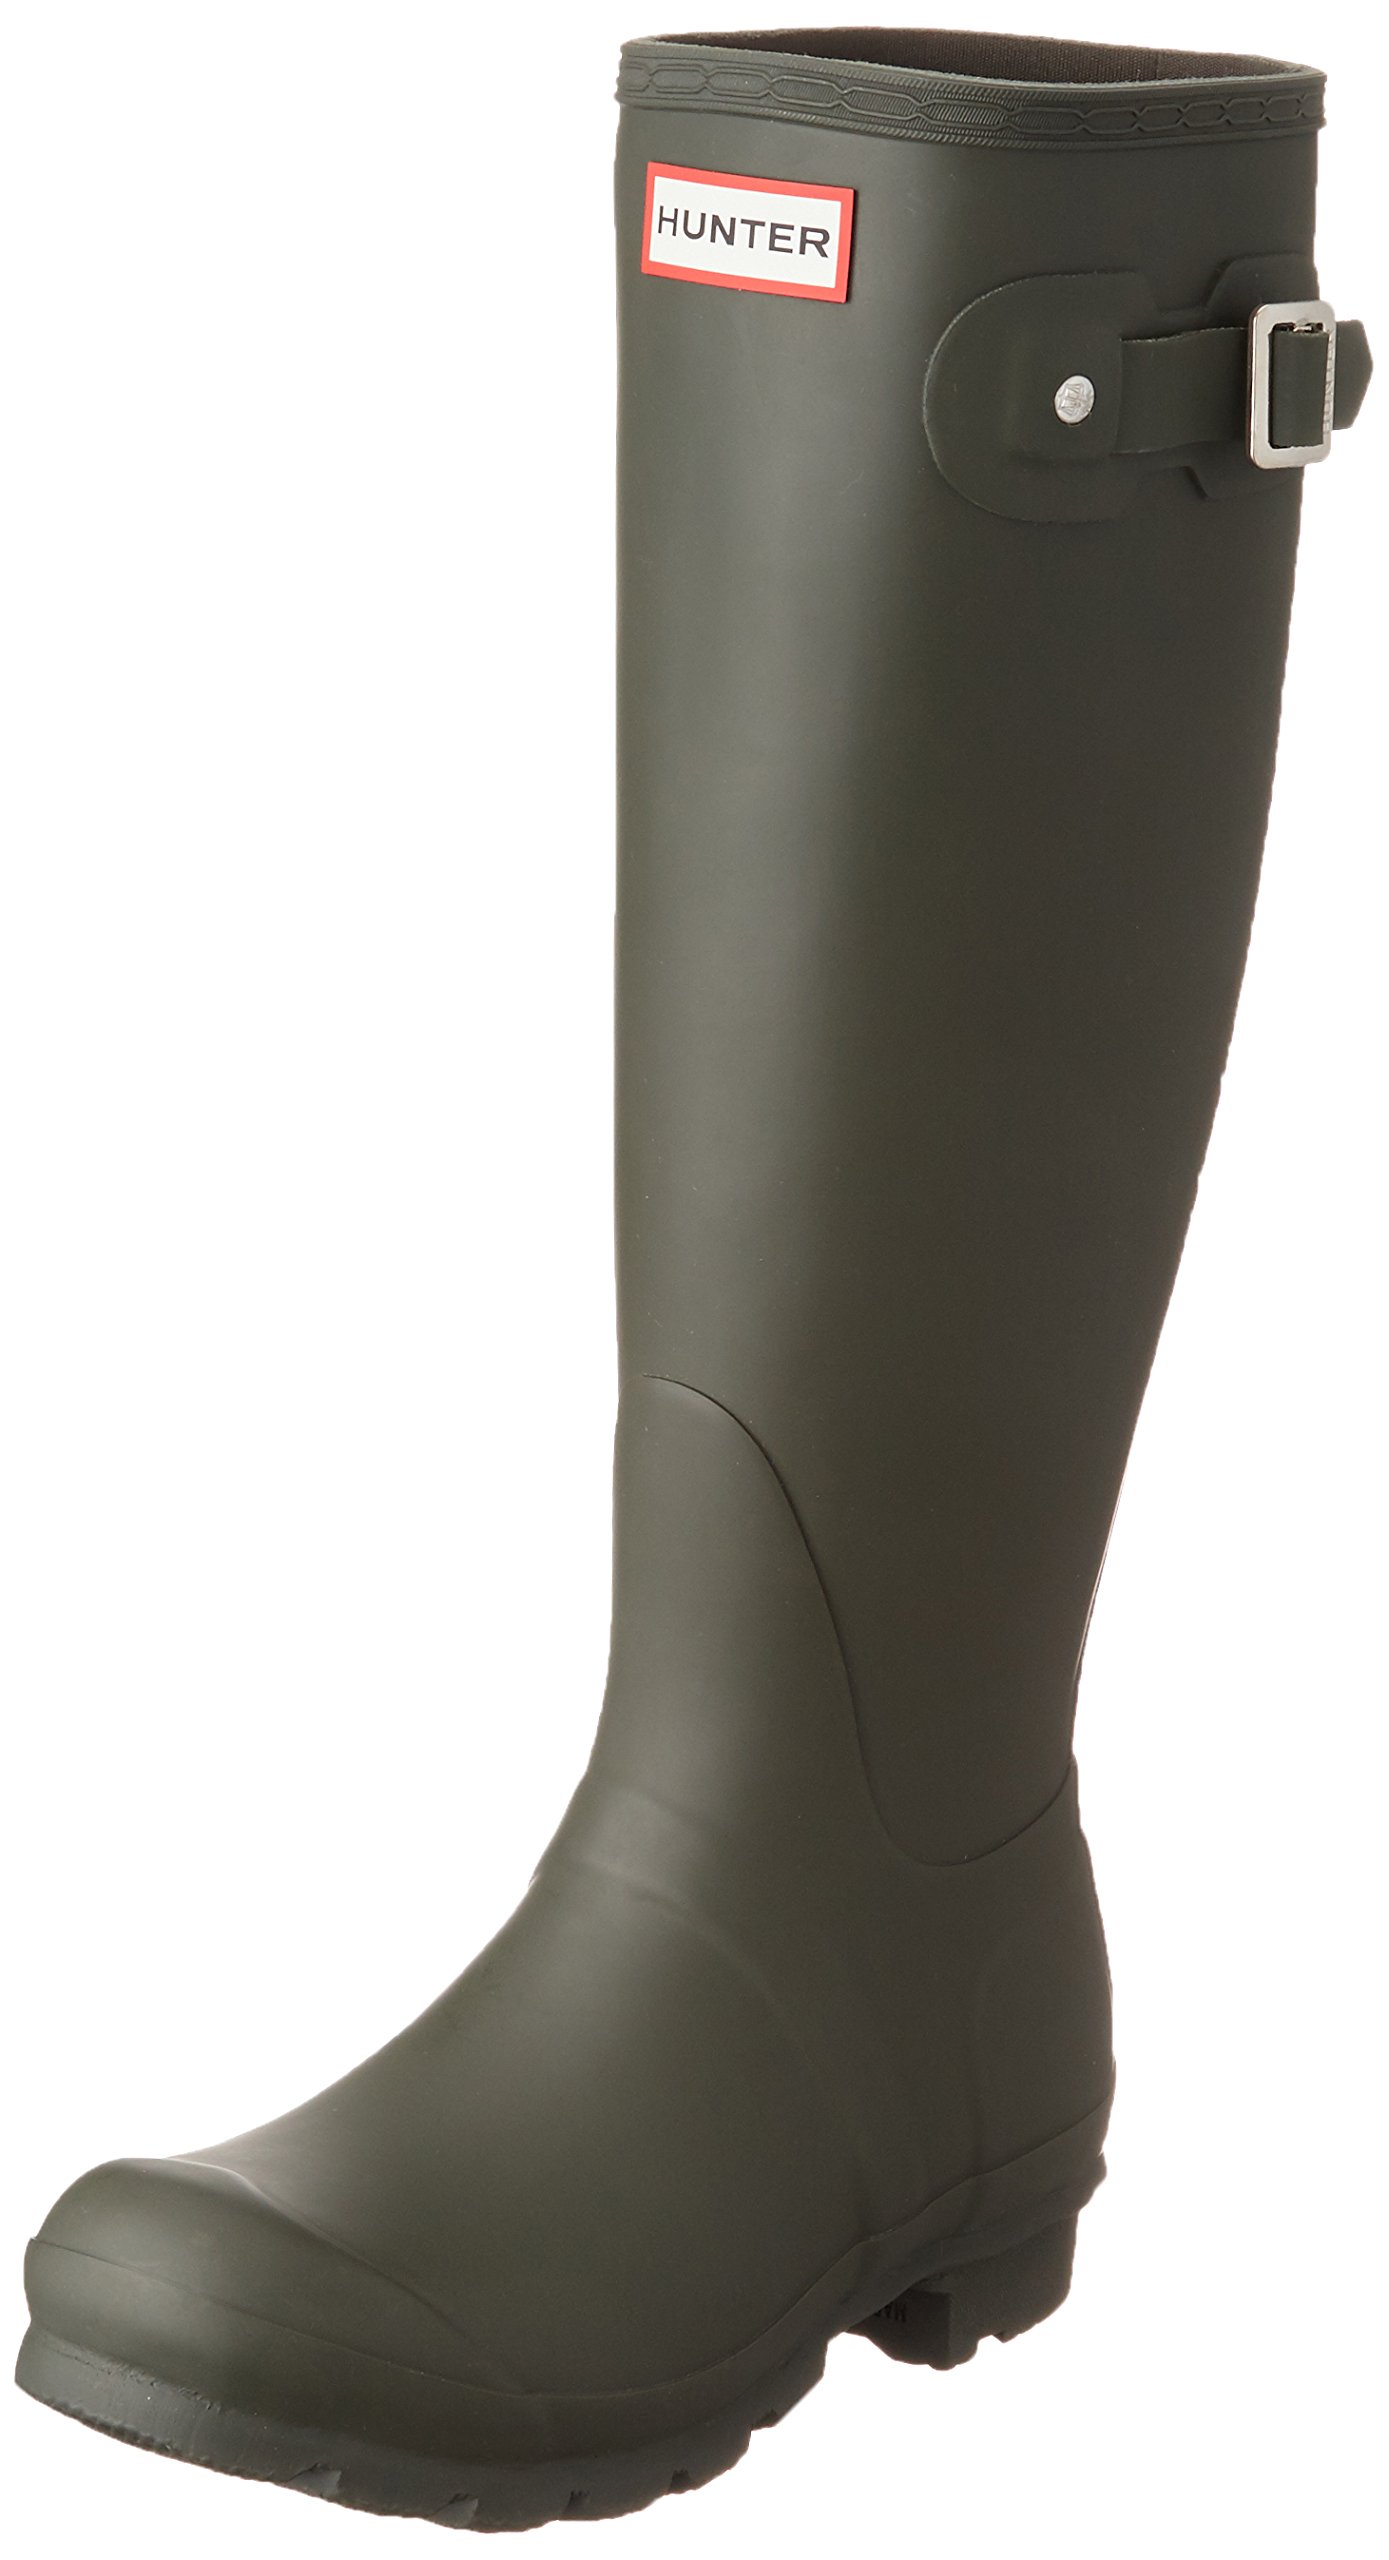 Hunter Women's Original Tall Dark Olive Rain Boots - 8 B(M) US